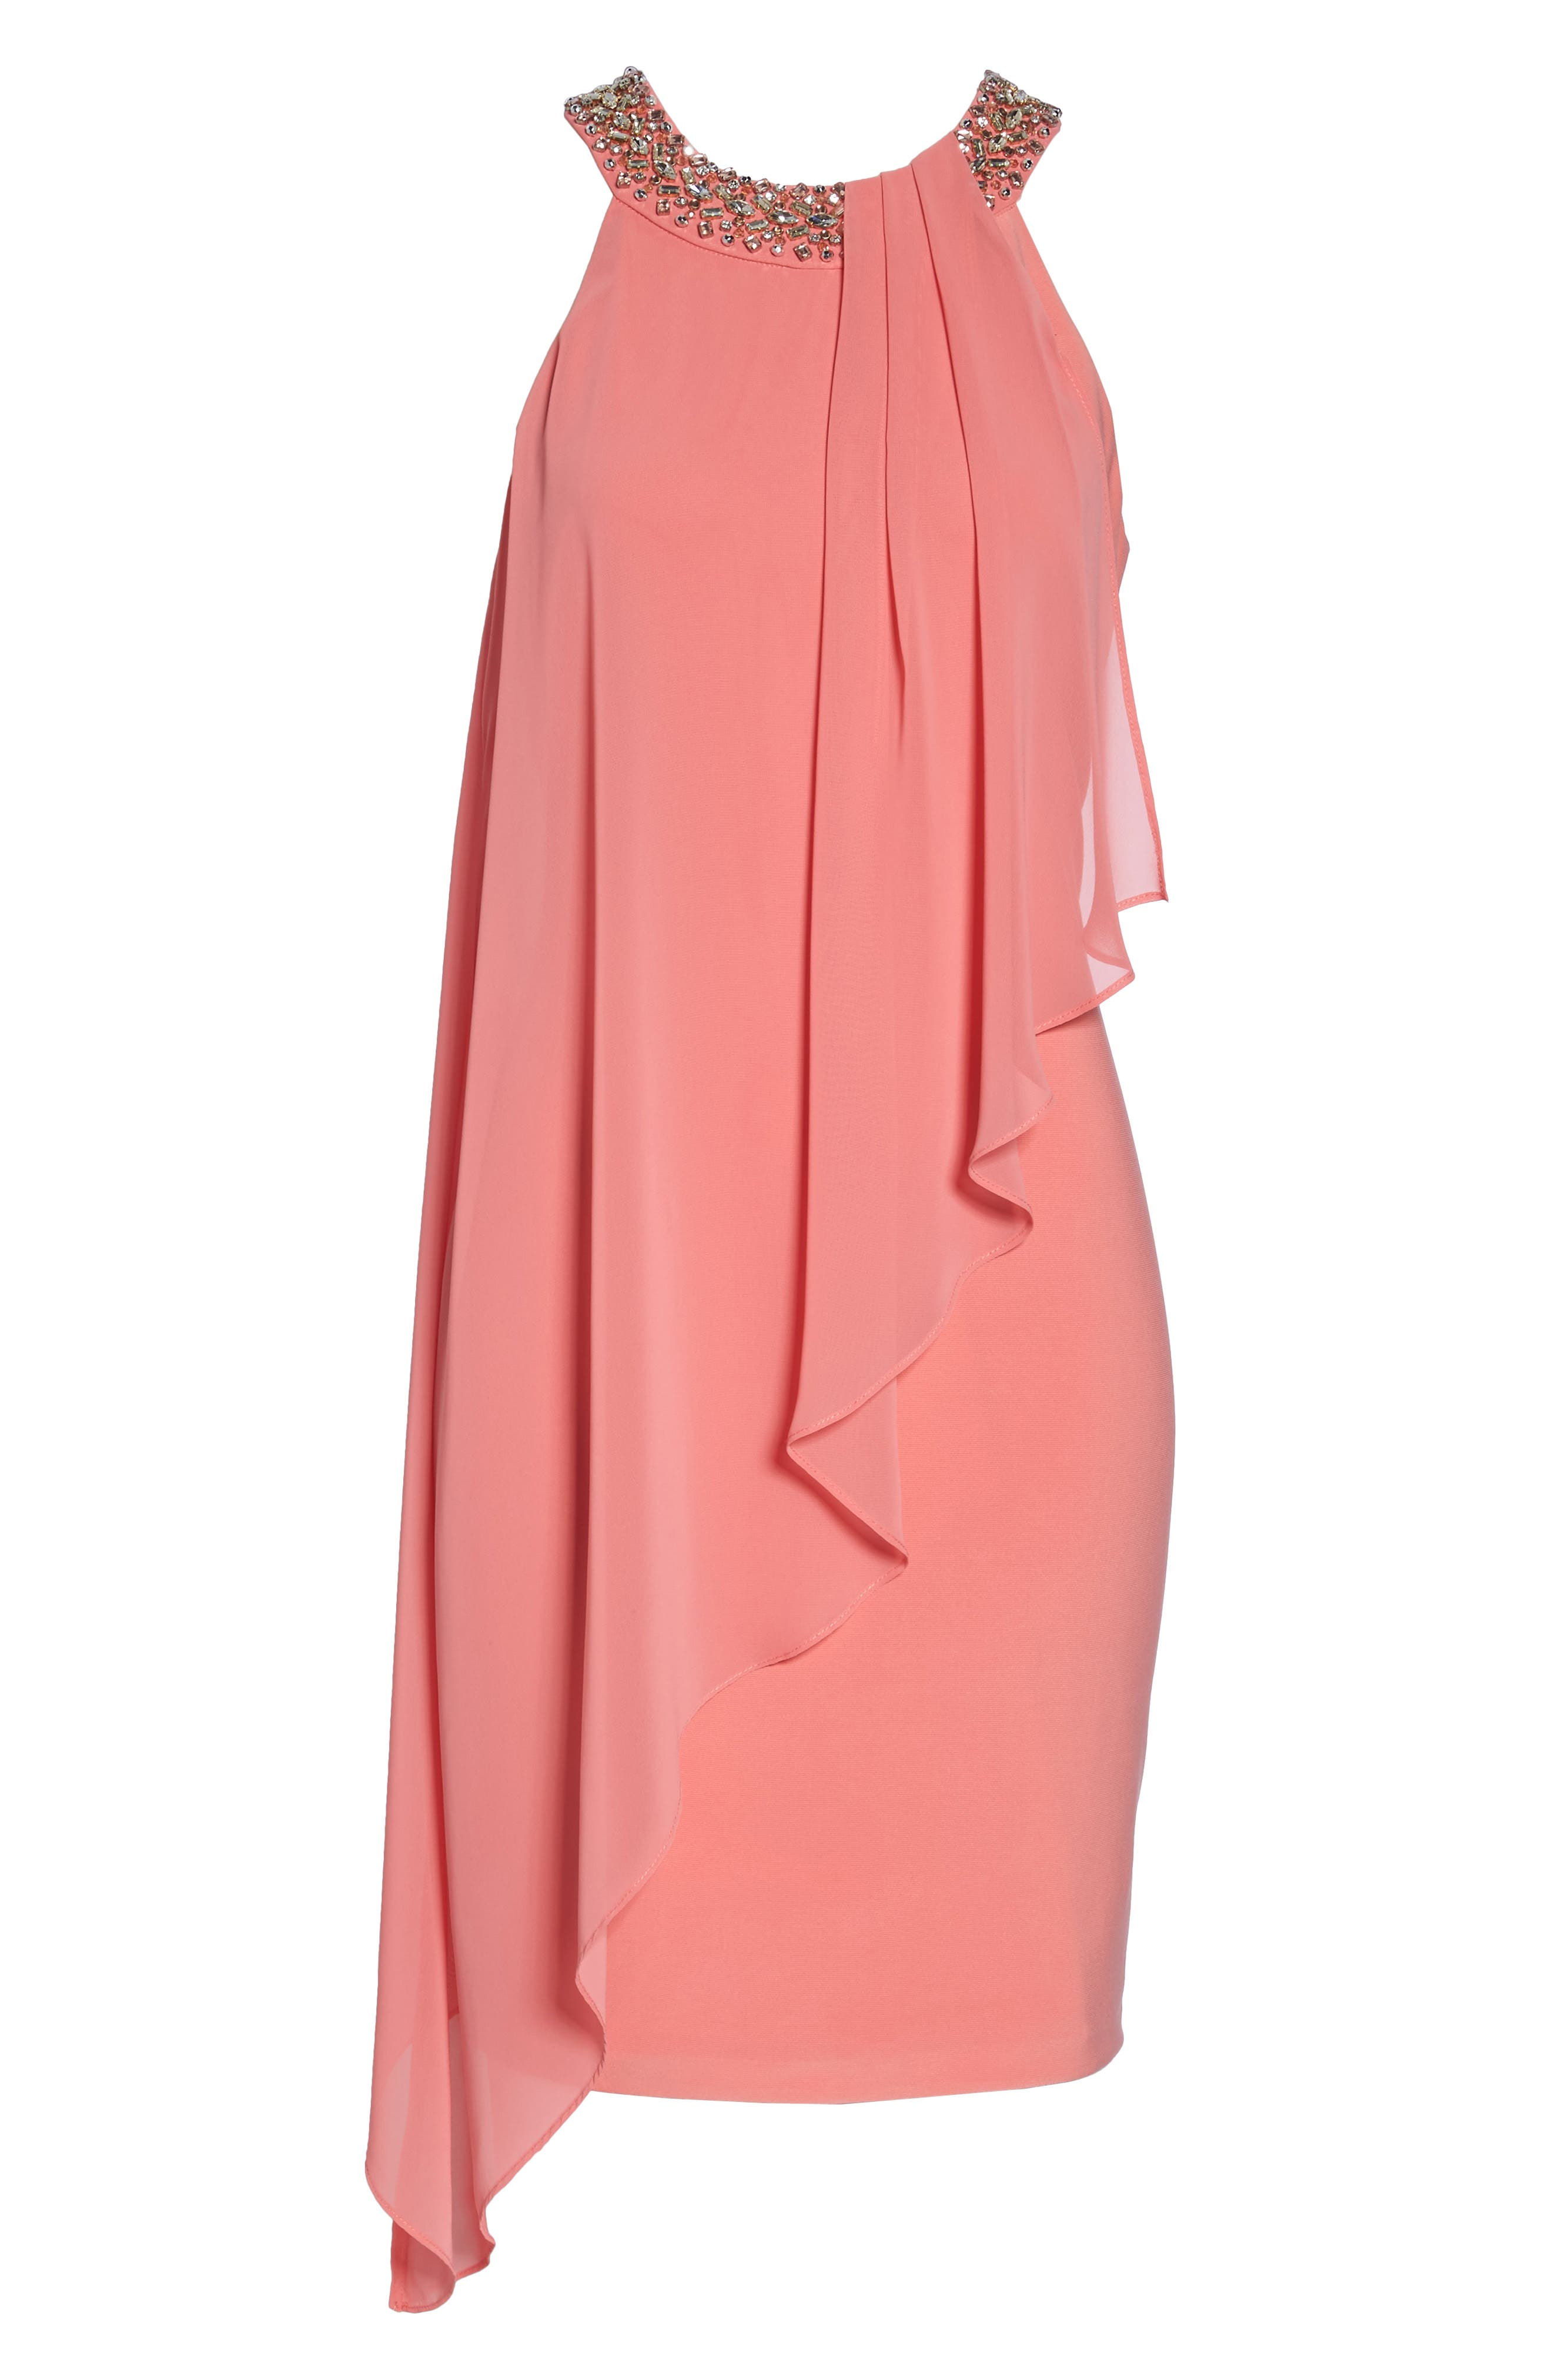 Embellished Chiffon Overlay A-Line Dress,                             Alternate thumbnail 6, color,                             Guava